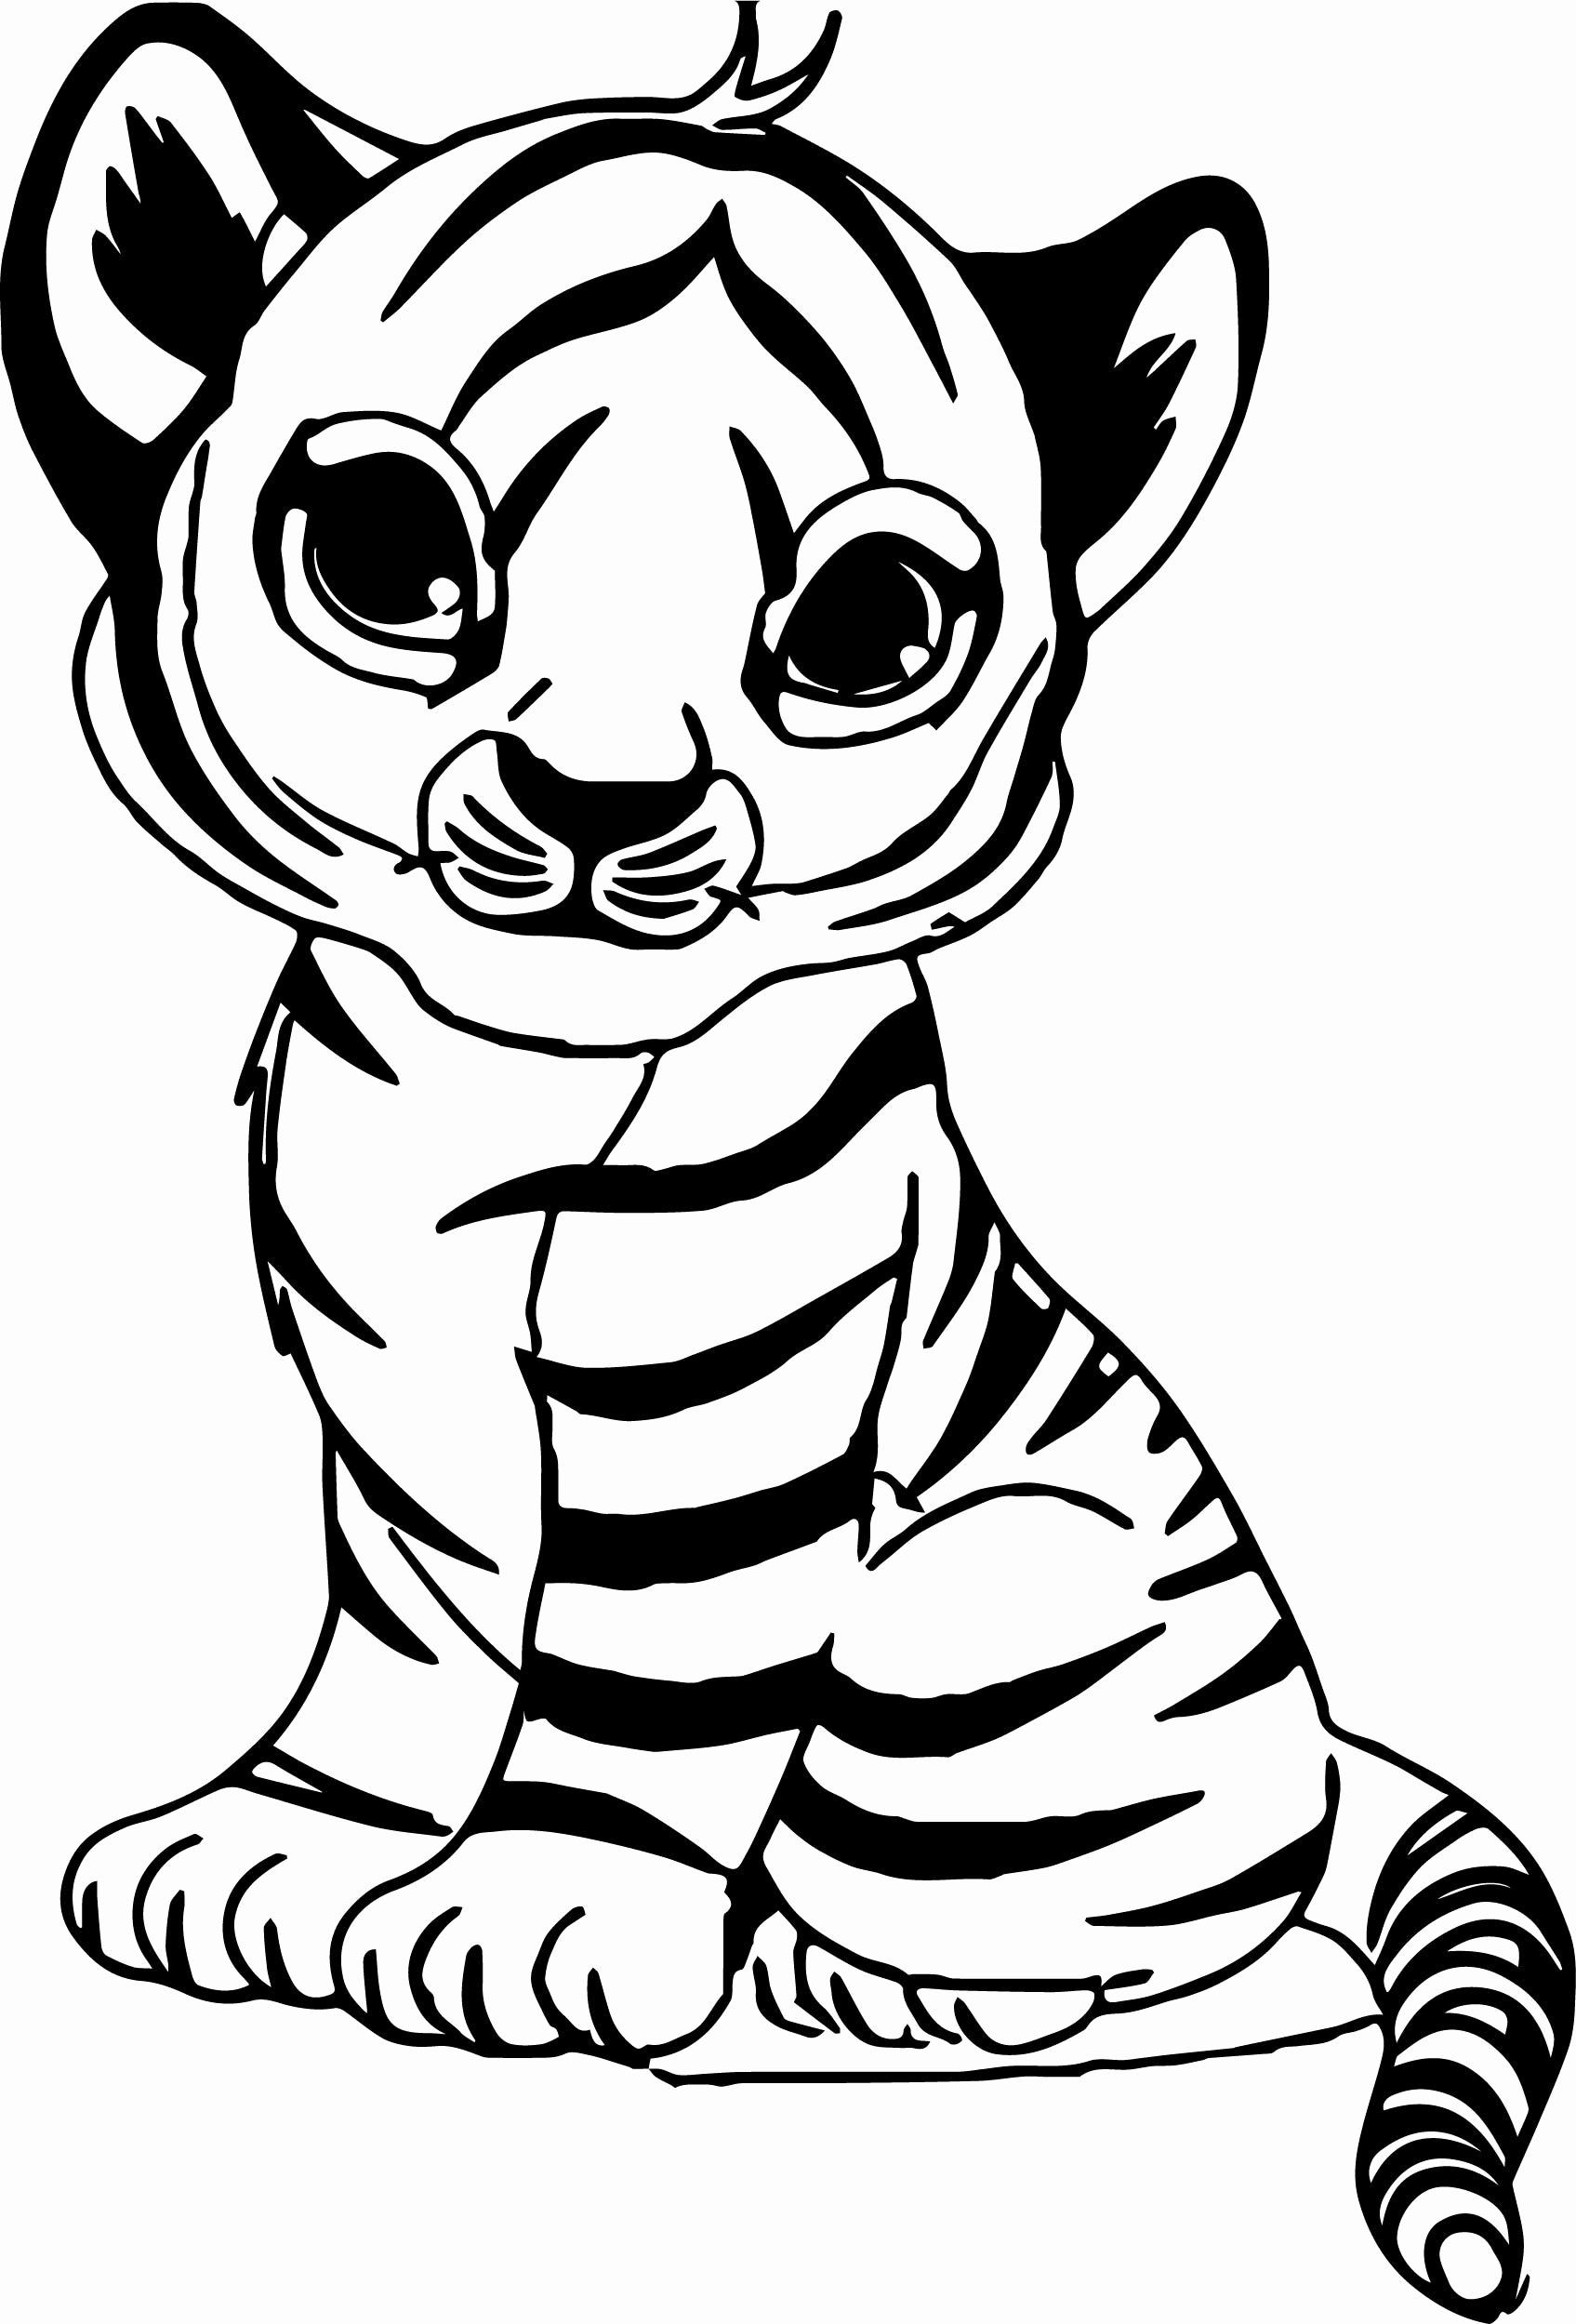 free printable animal colouring pages 30 free printable geometric animal coloring pages the free animal pages printable colouring